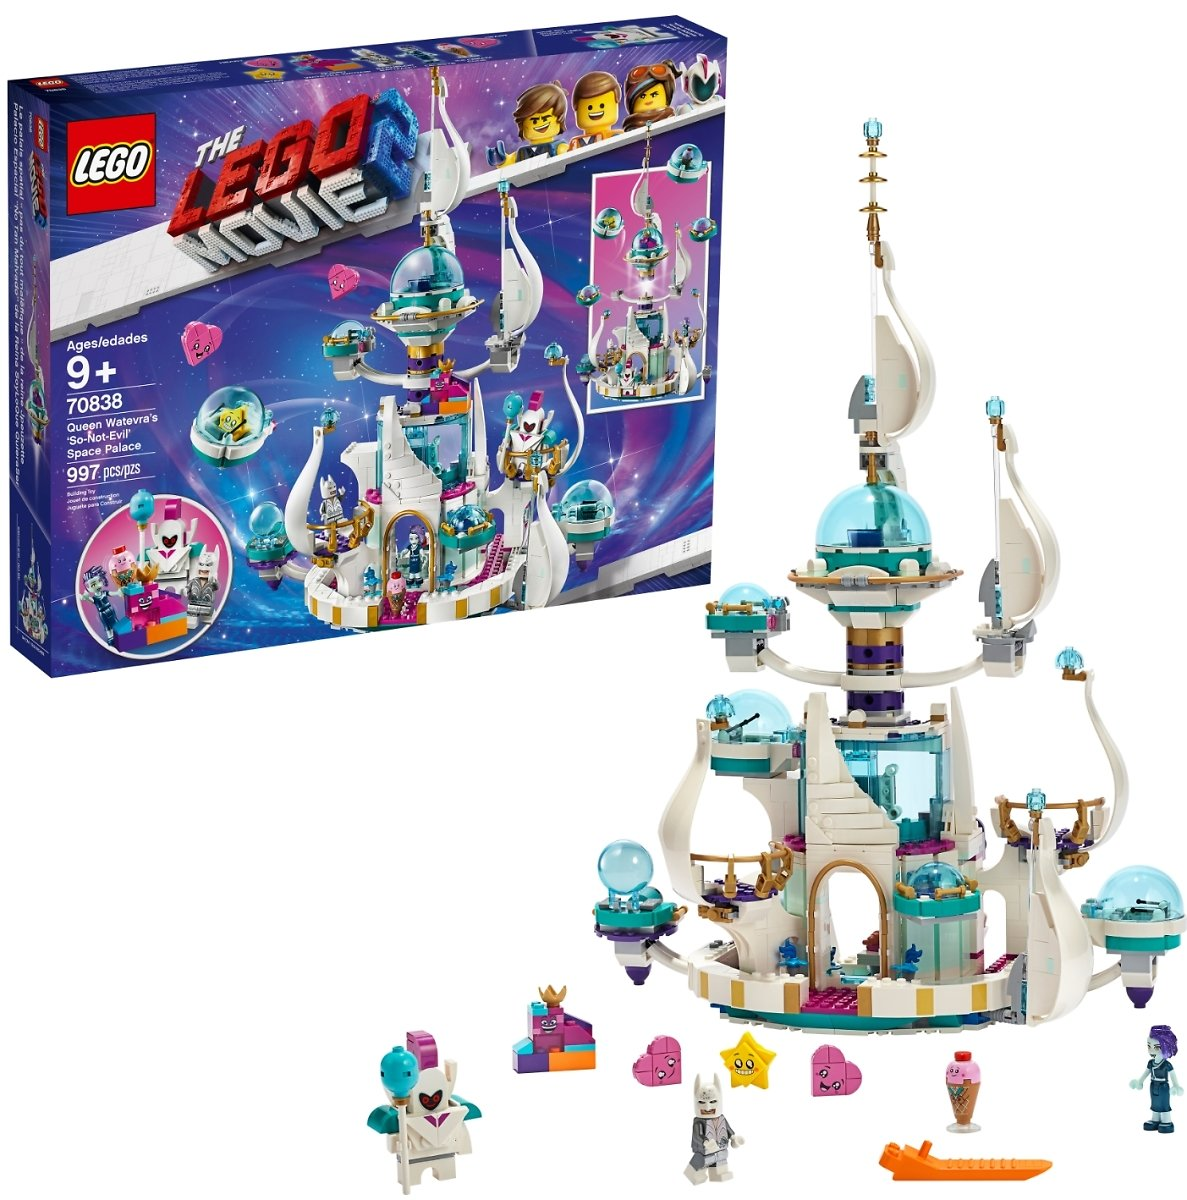 LEGO Movie Queen Watevra's So-Not-Evil' Space Palace / Walmart